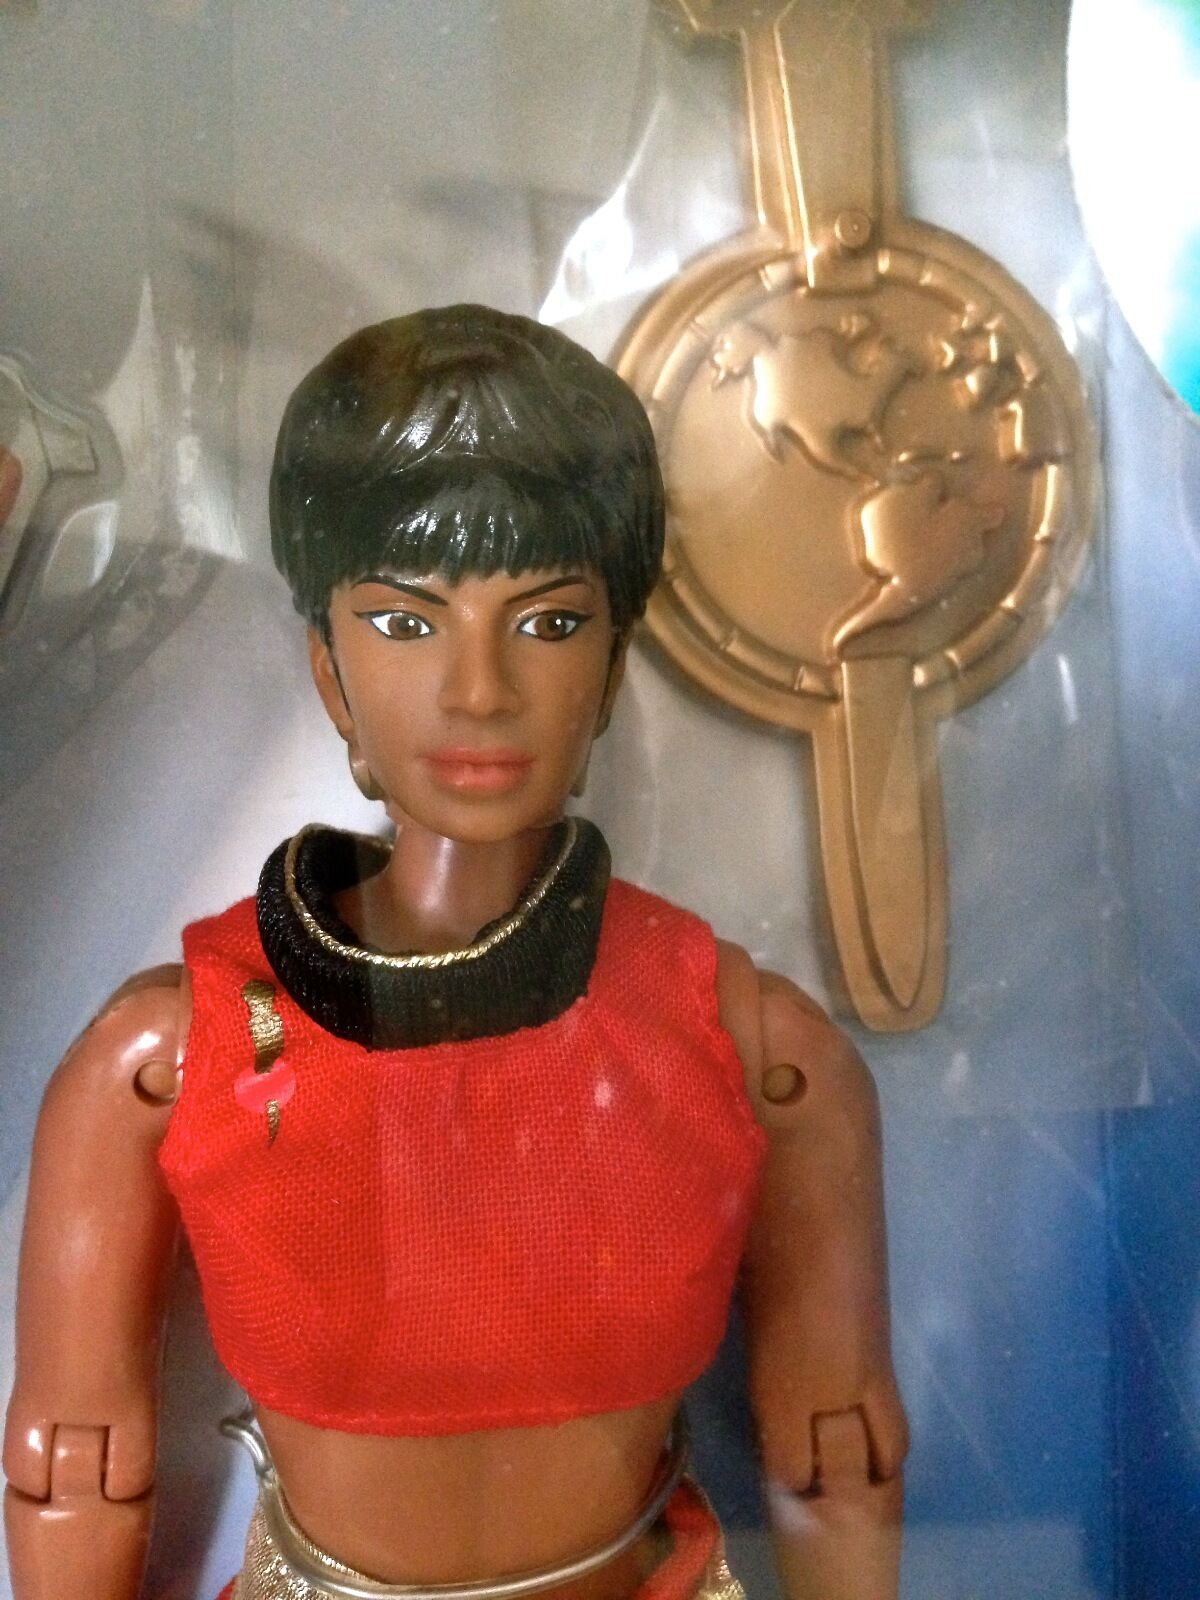 STAR TREK LIEUTENANT UHURA 9 . PLAYMATES. KB EXCLUSIVE. FROM MIRROR, MIRROR.